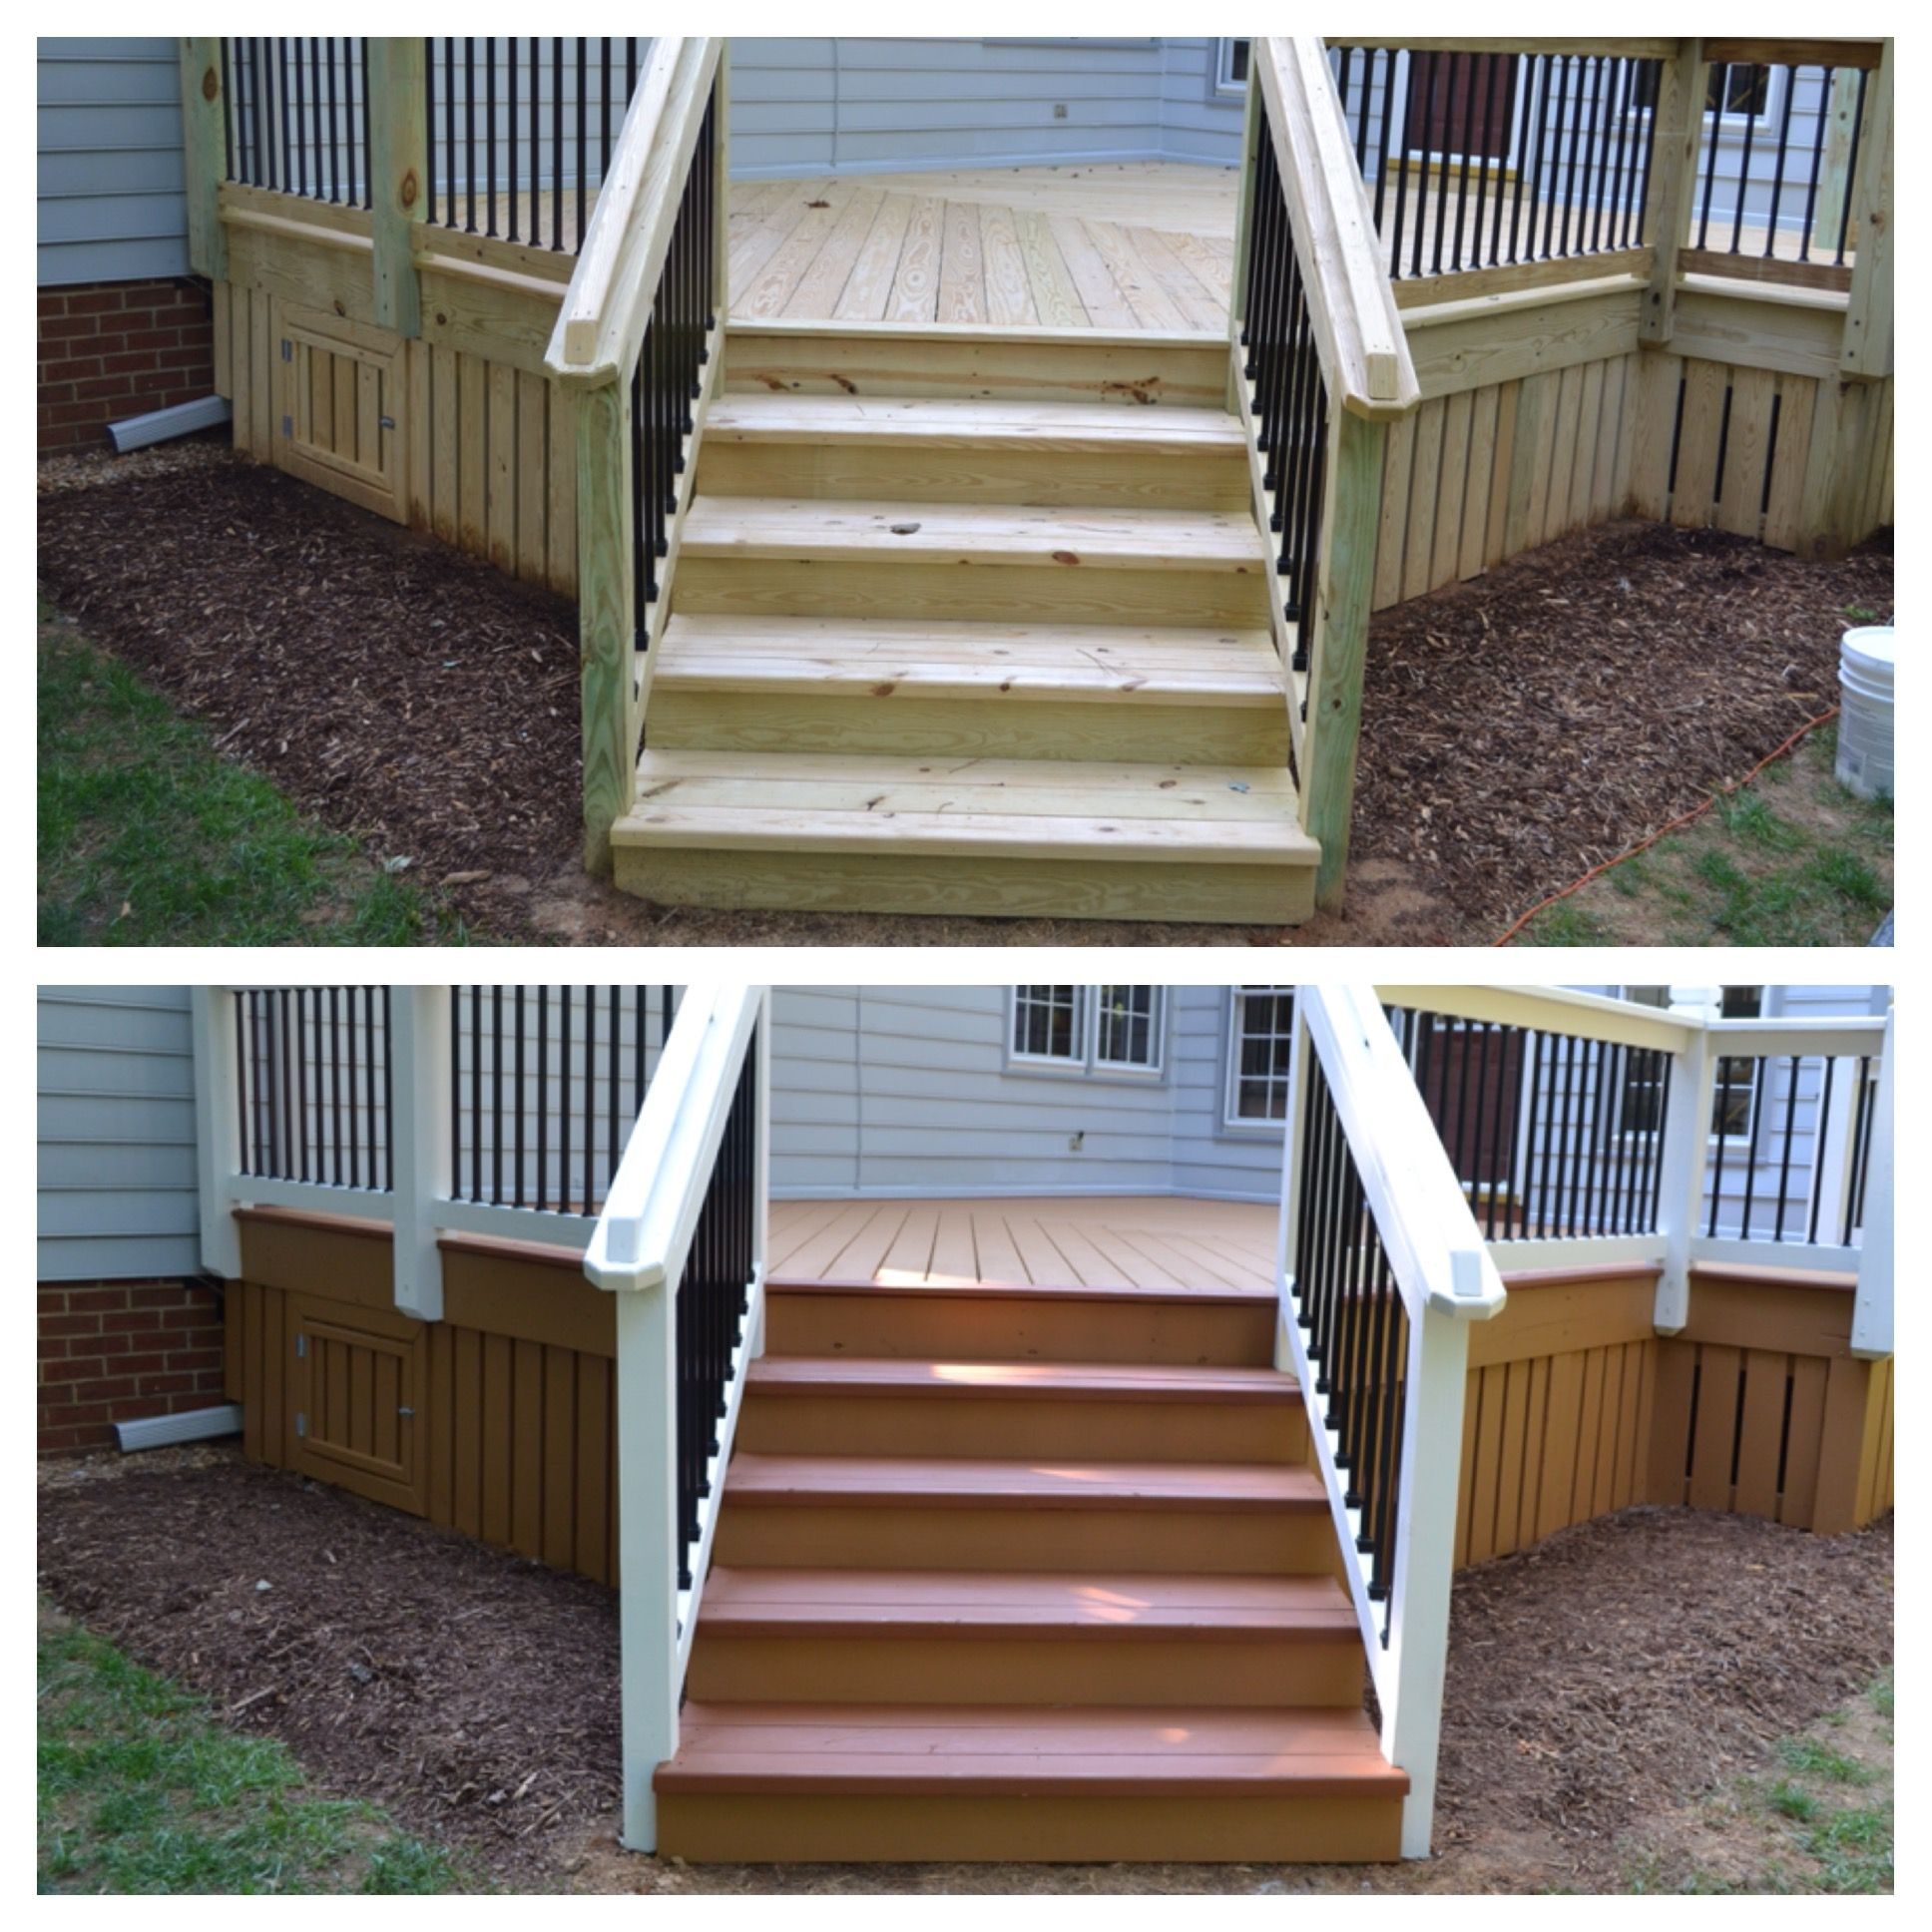 Envirowash stained and sealed this new deck with three